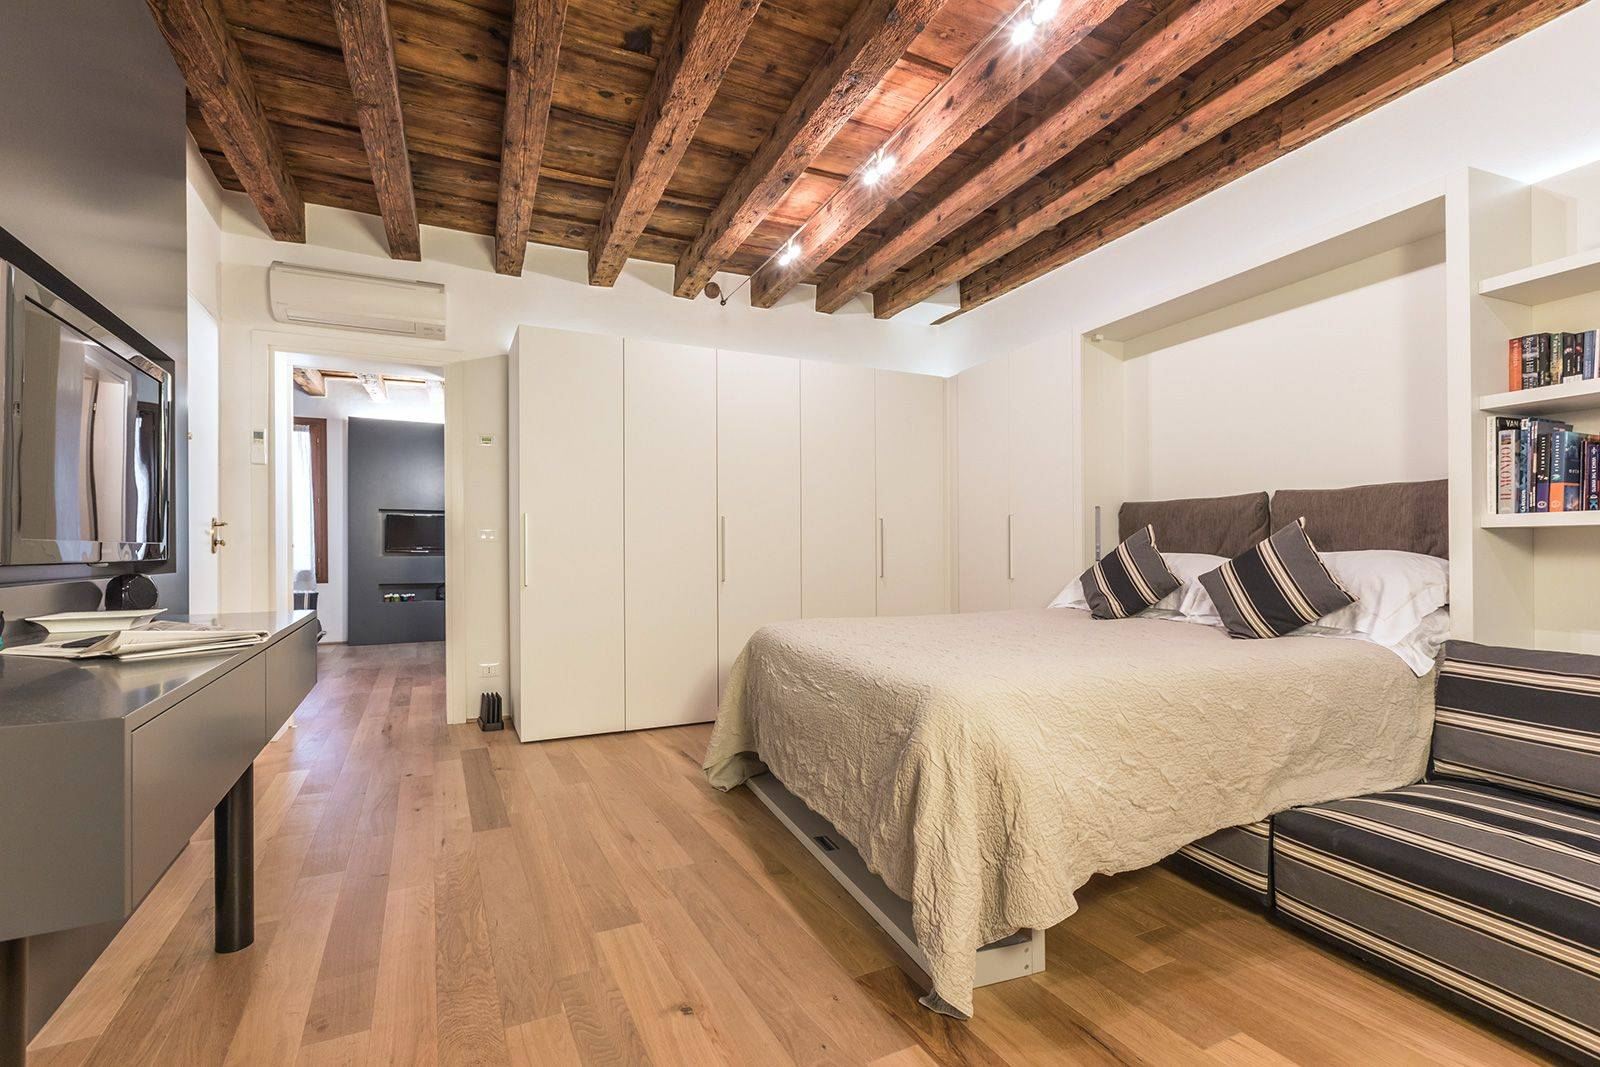 there is plenty of closet and storage space, Wi-Fi, large TV in both rooms...